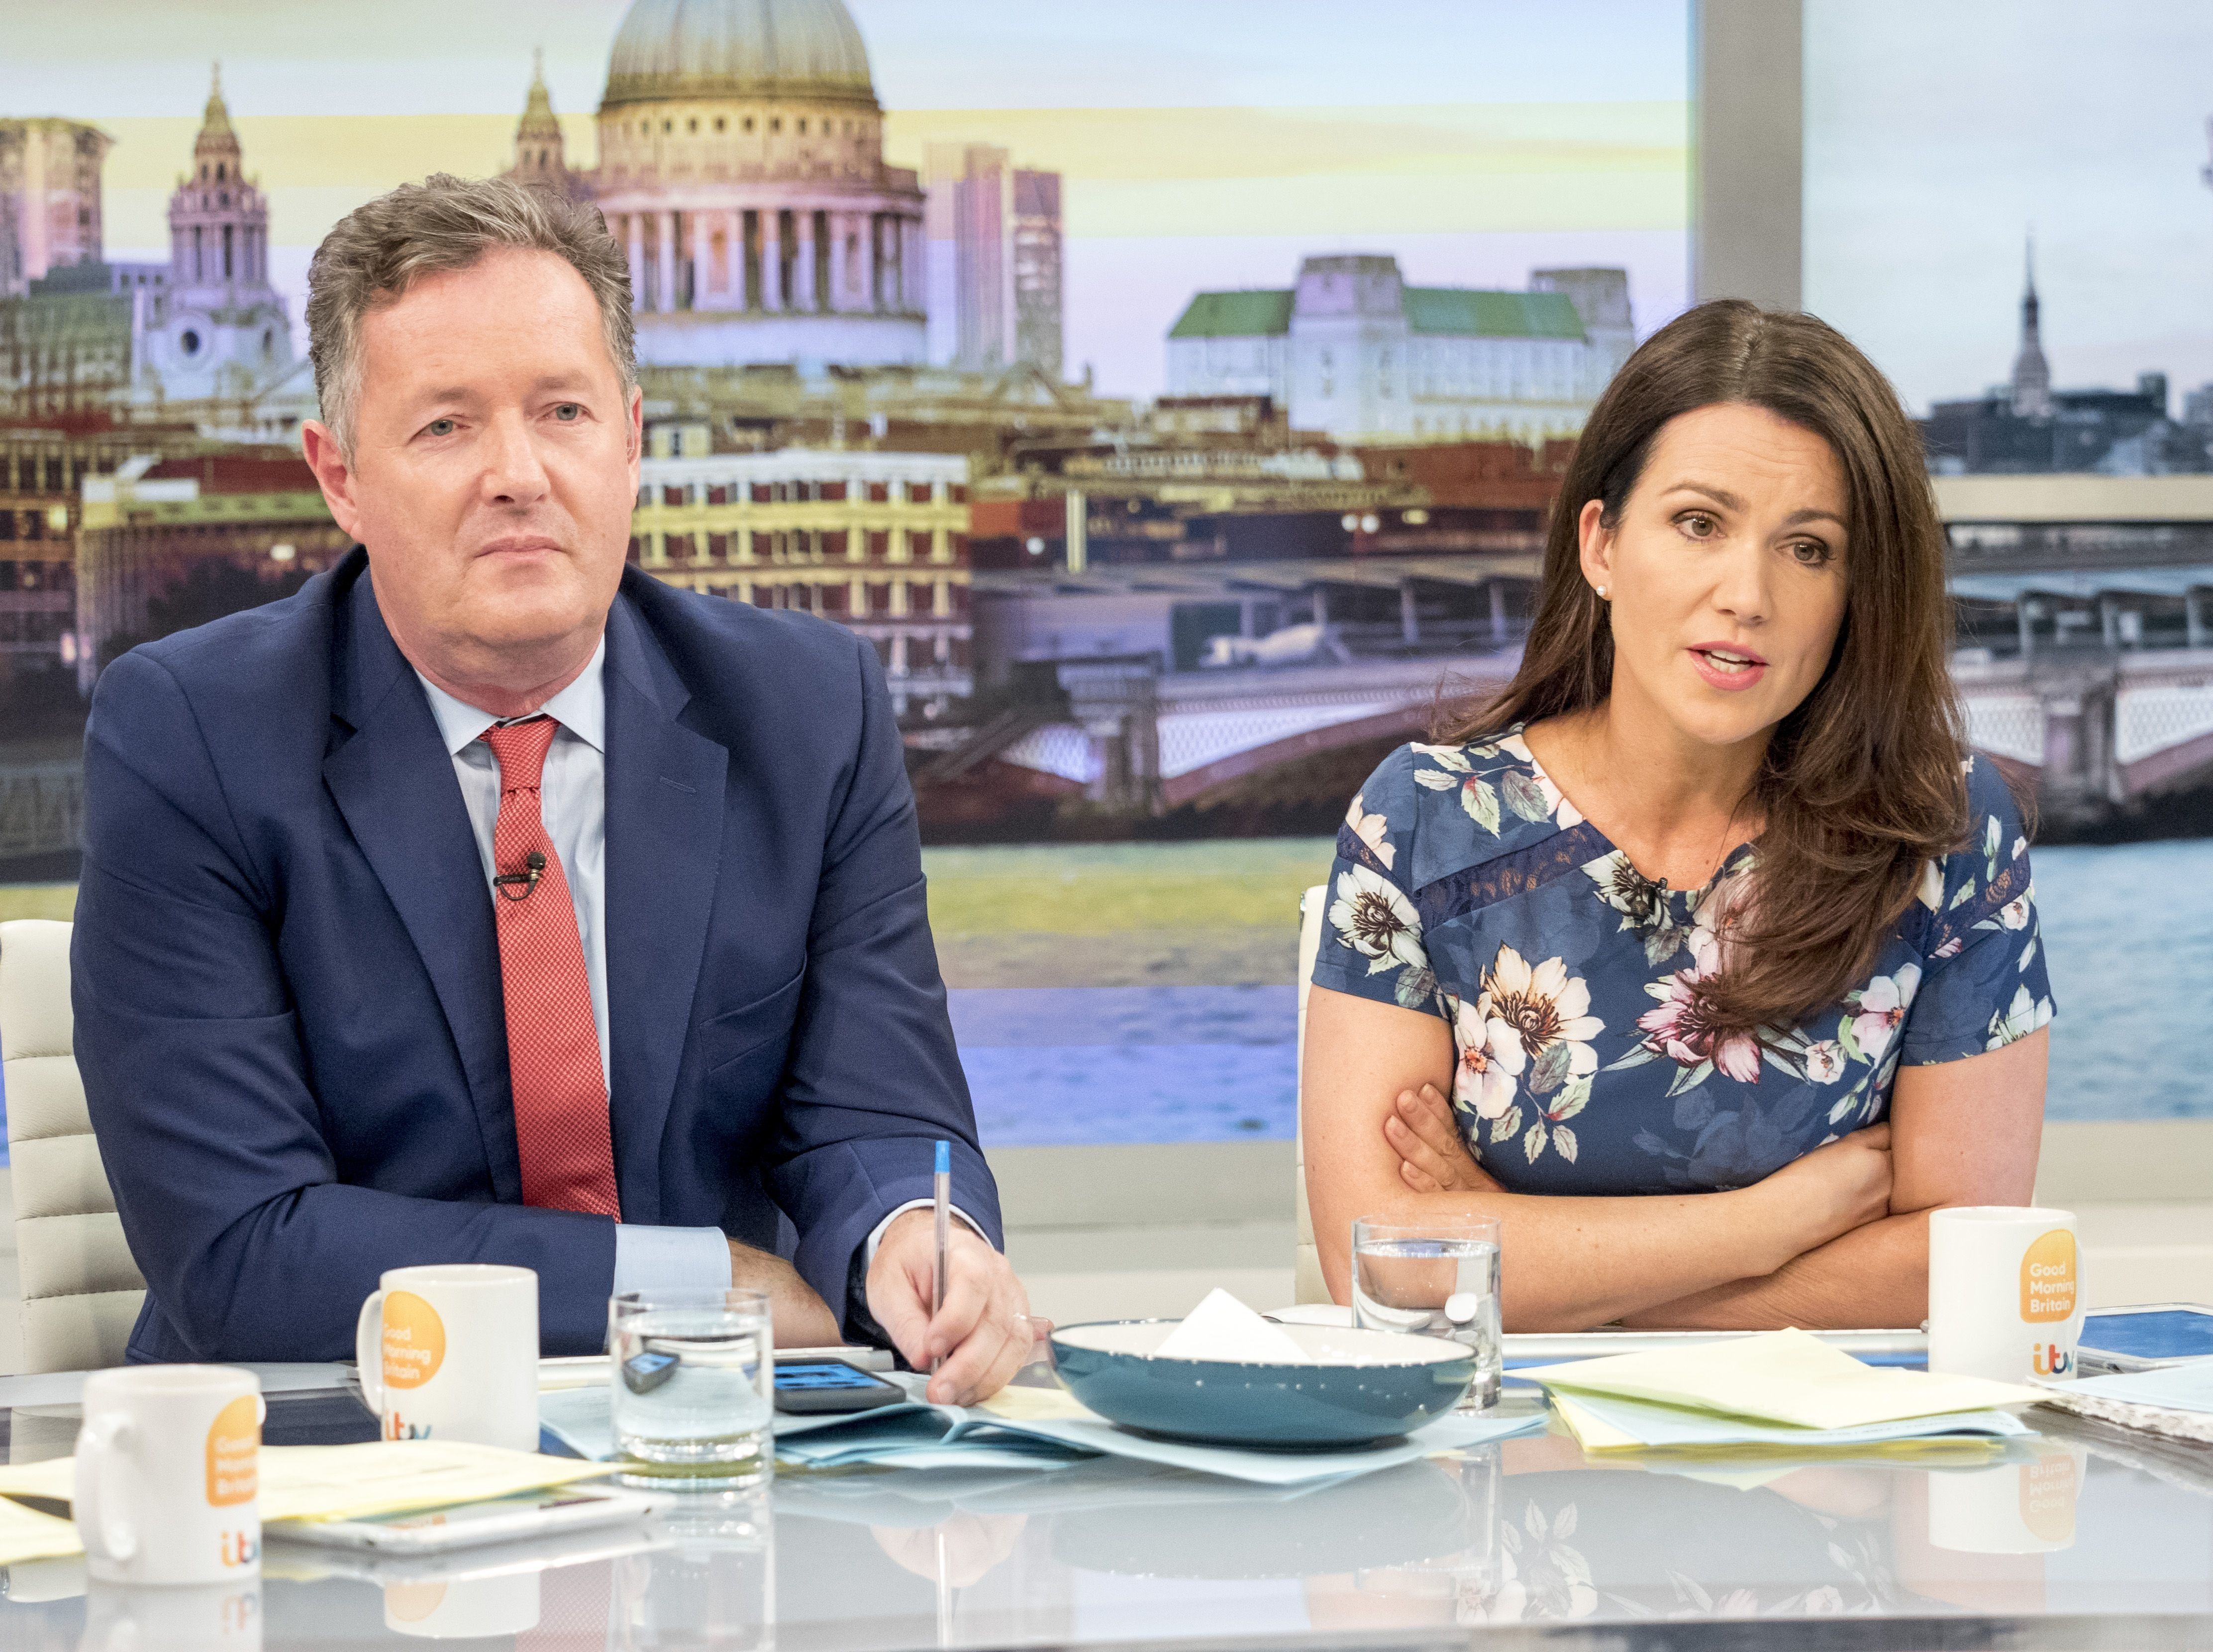 Piers Morgan Accuses Theresa May Of Blocking MPs Appearing On 'Good Morning